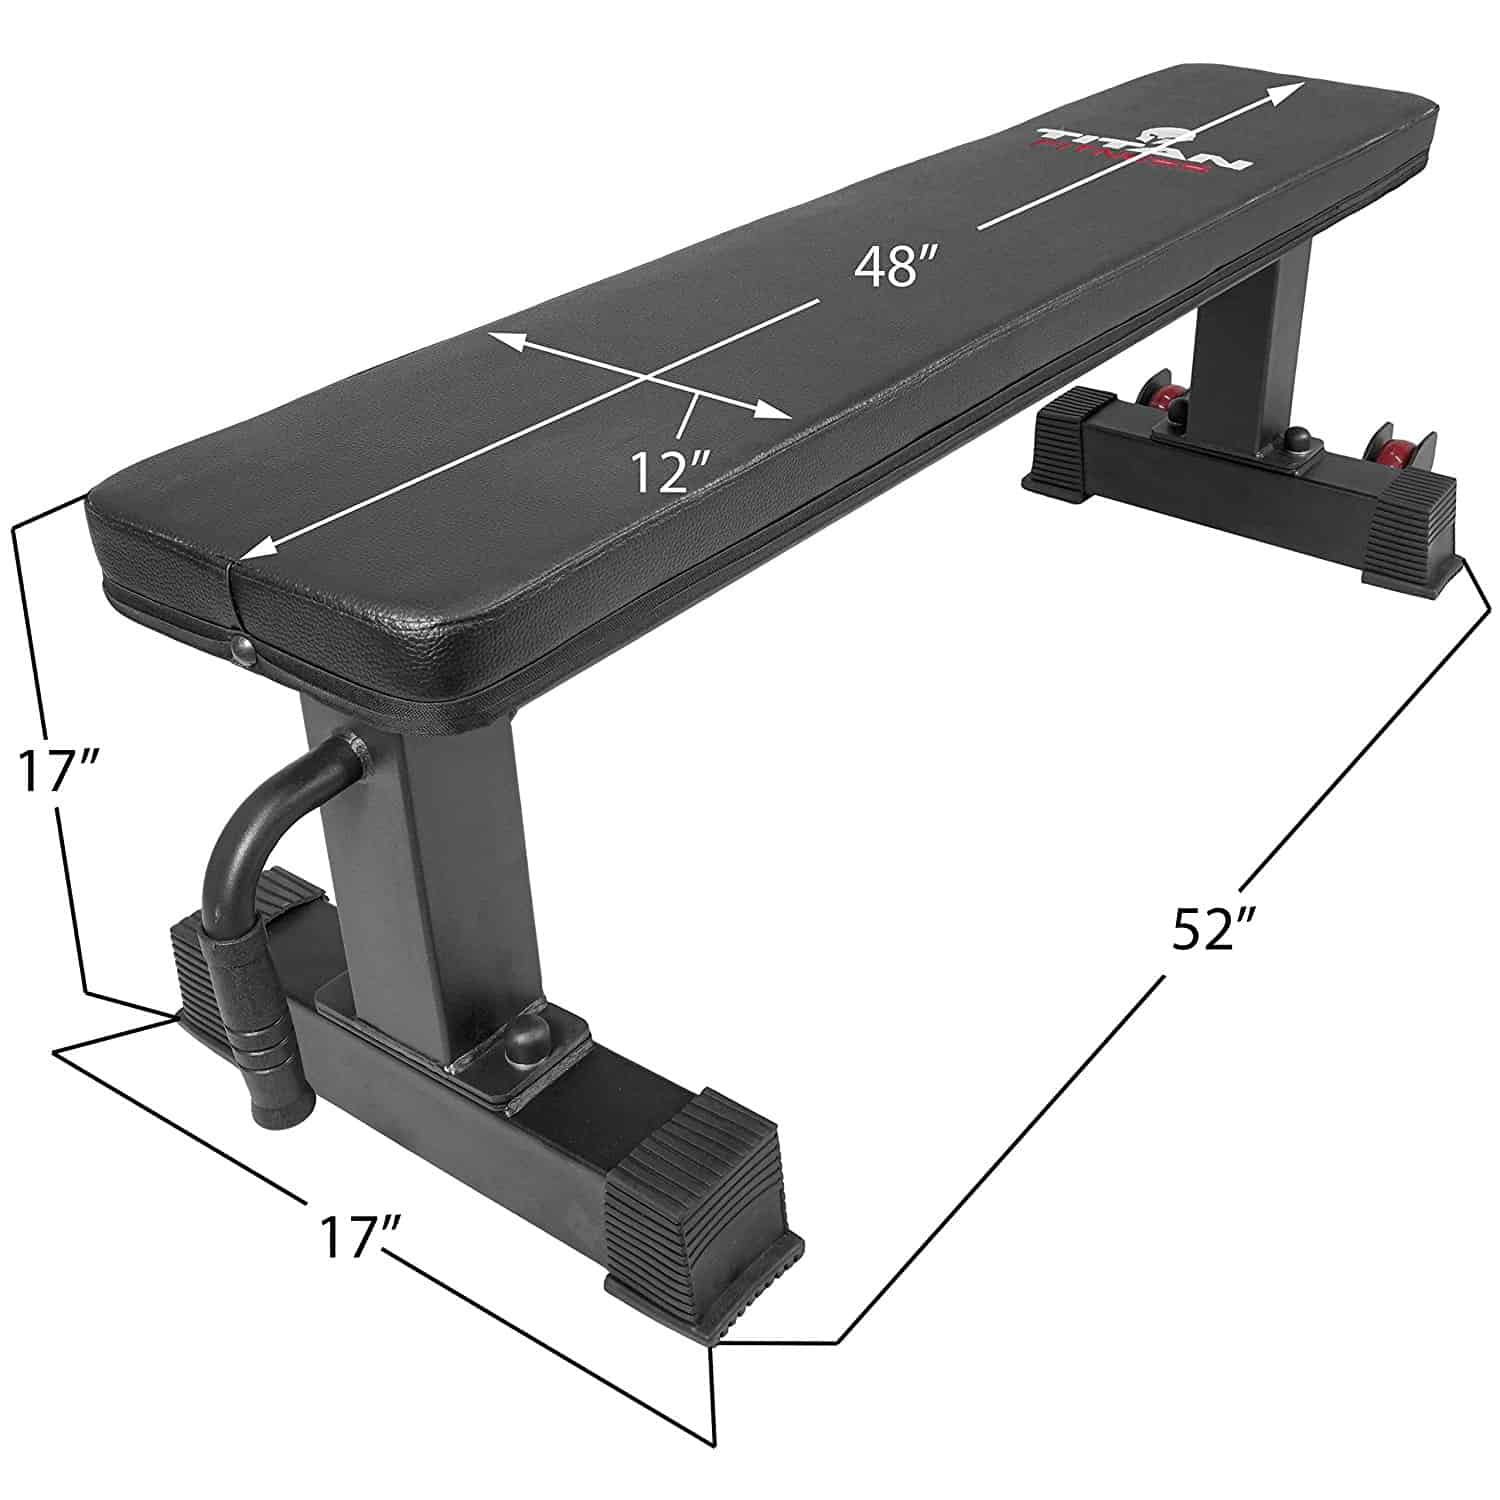 Phenomenal 5 Best Flat Bench Reviews And Buying Guide 2019 Short Links Chair Design For Home Short Linksinfo